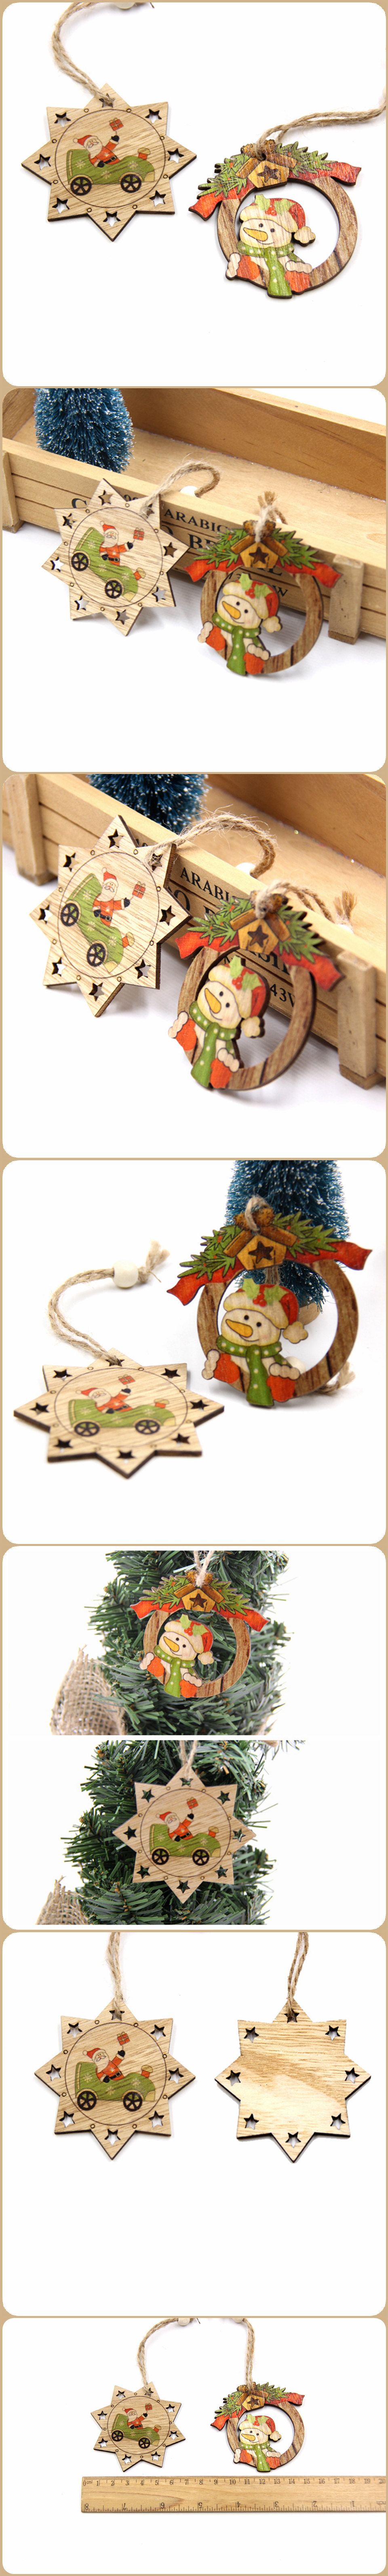 Find New Ideas For X Mas Decoration. Visit My Website And See More Product